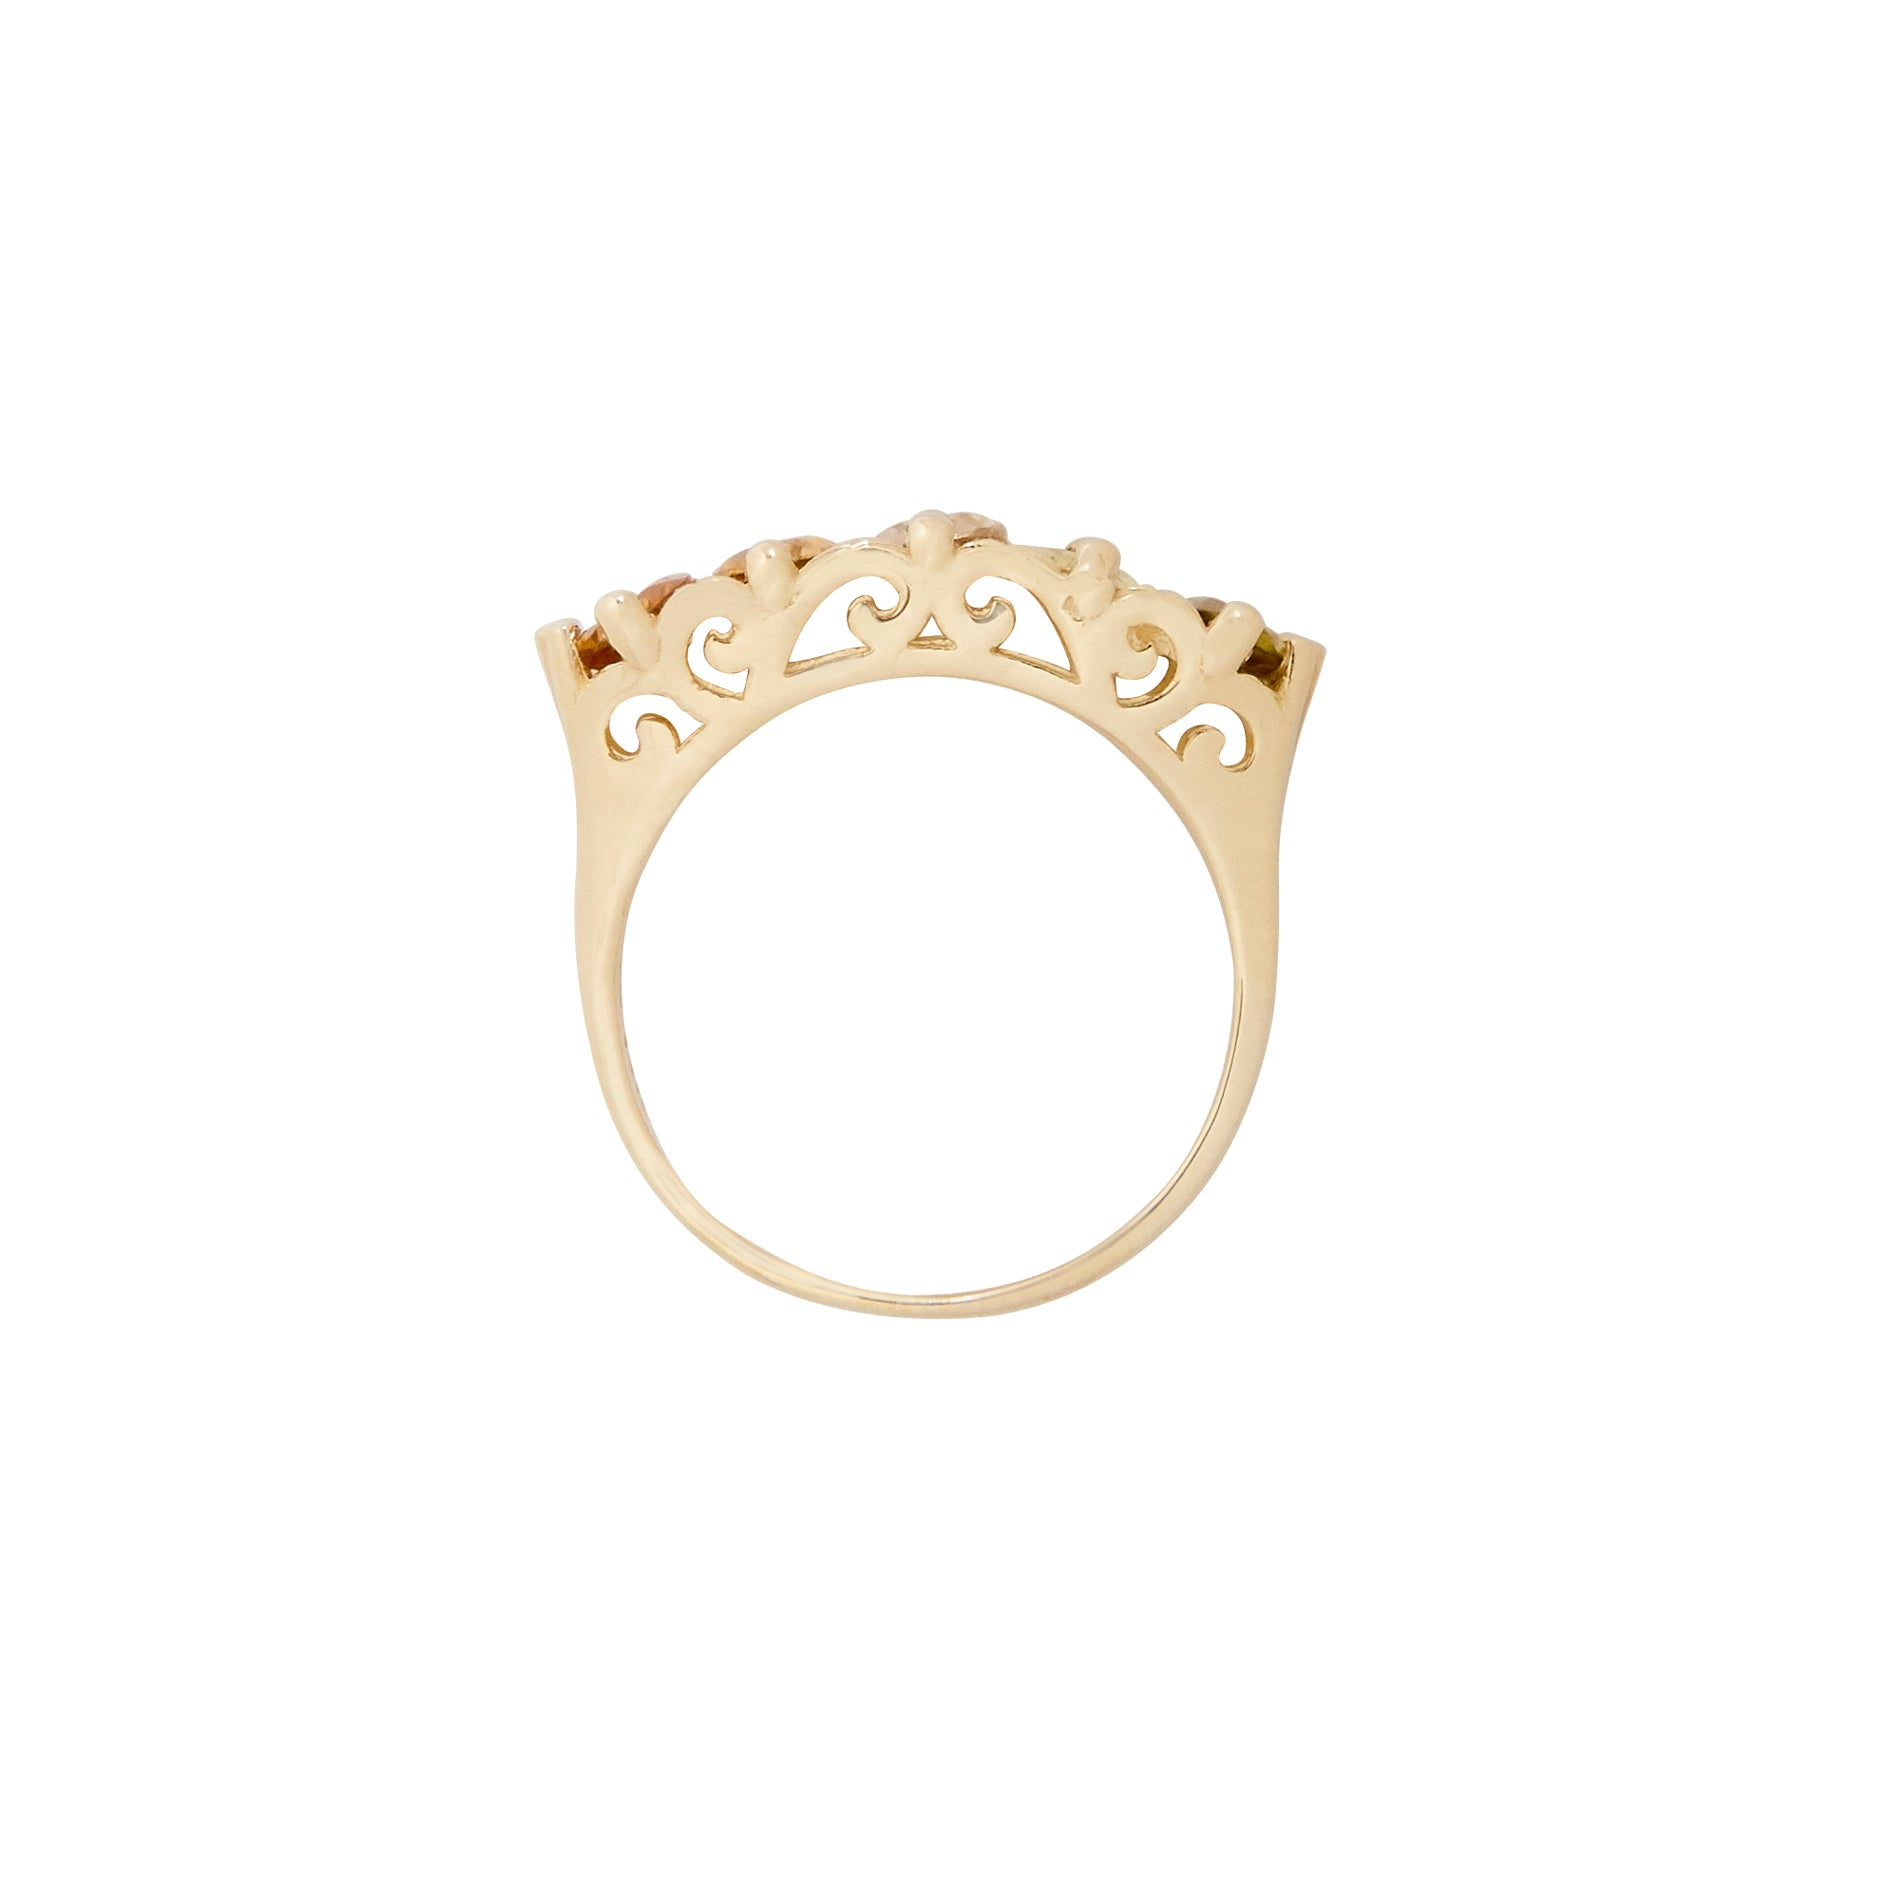 The F&B Confetti Ombre Ring